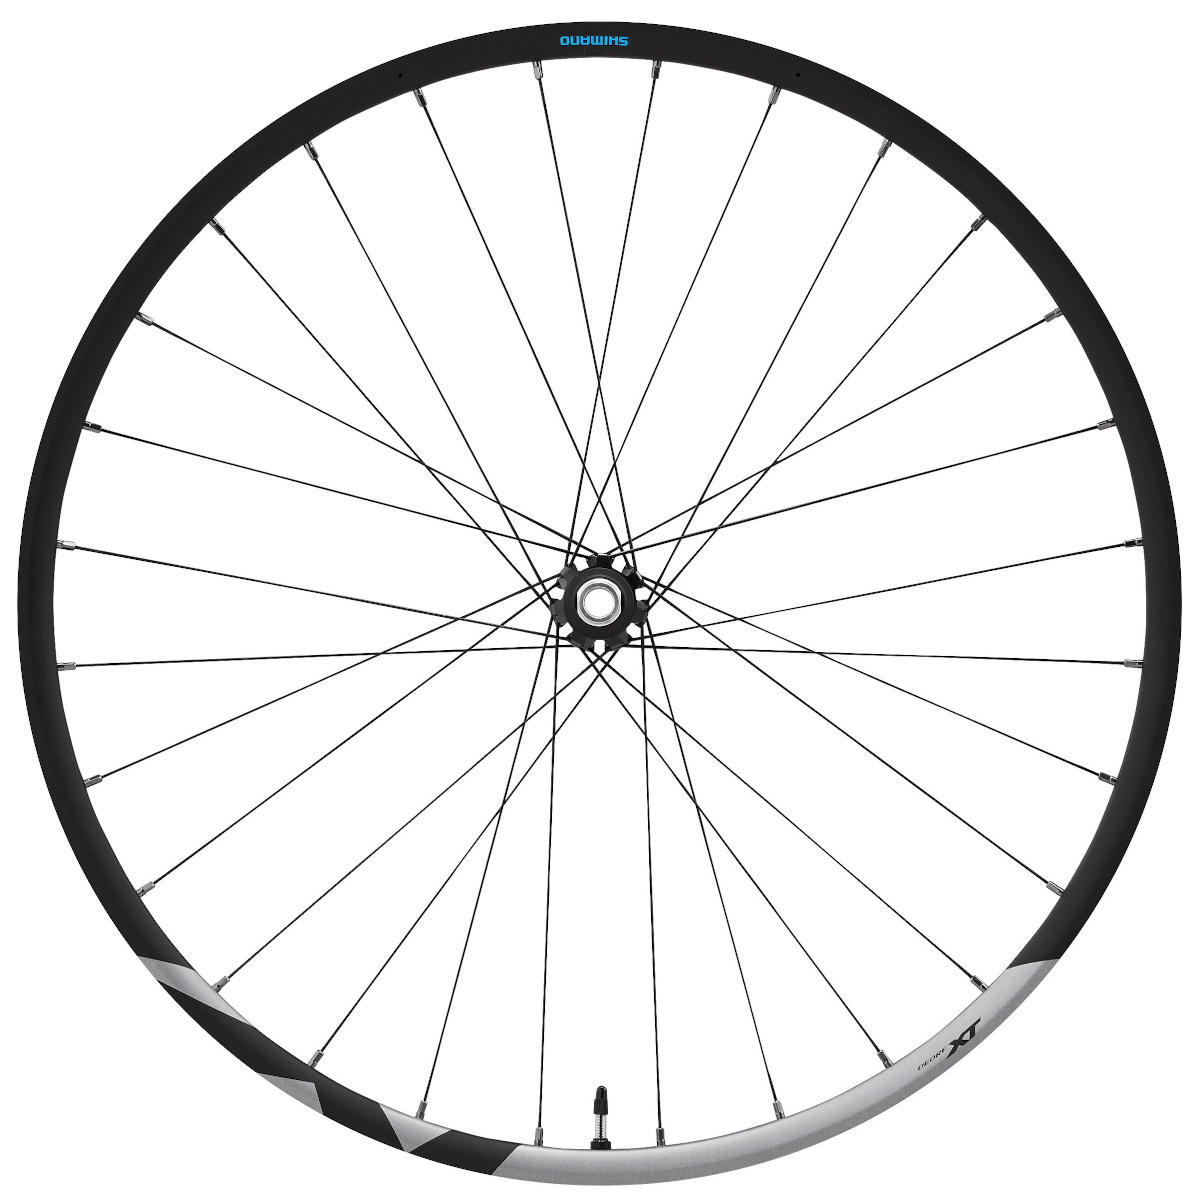 Shimano Deore Xt M8100 27.5in 650 15x110mm E-thru Cl Disc Front Wheel